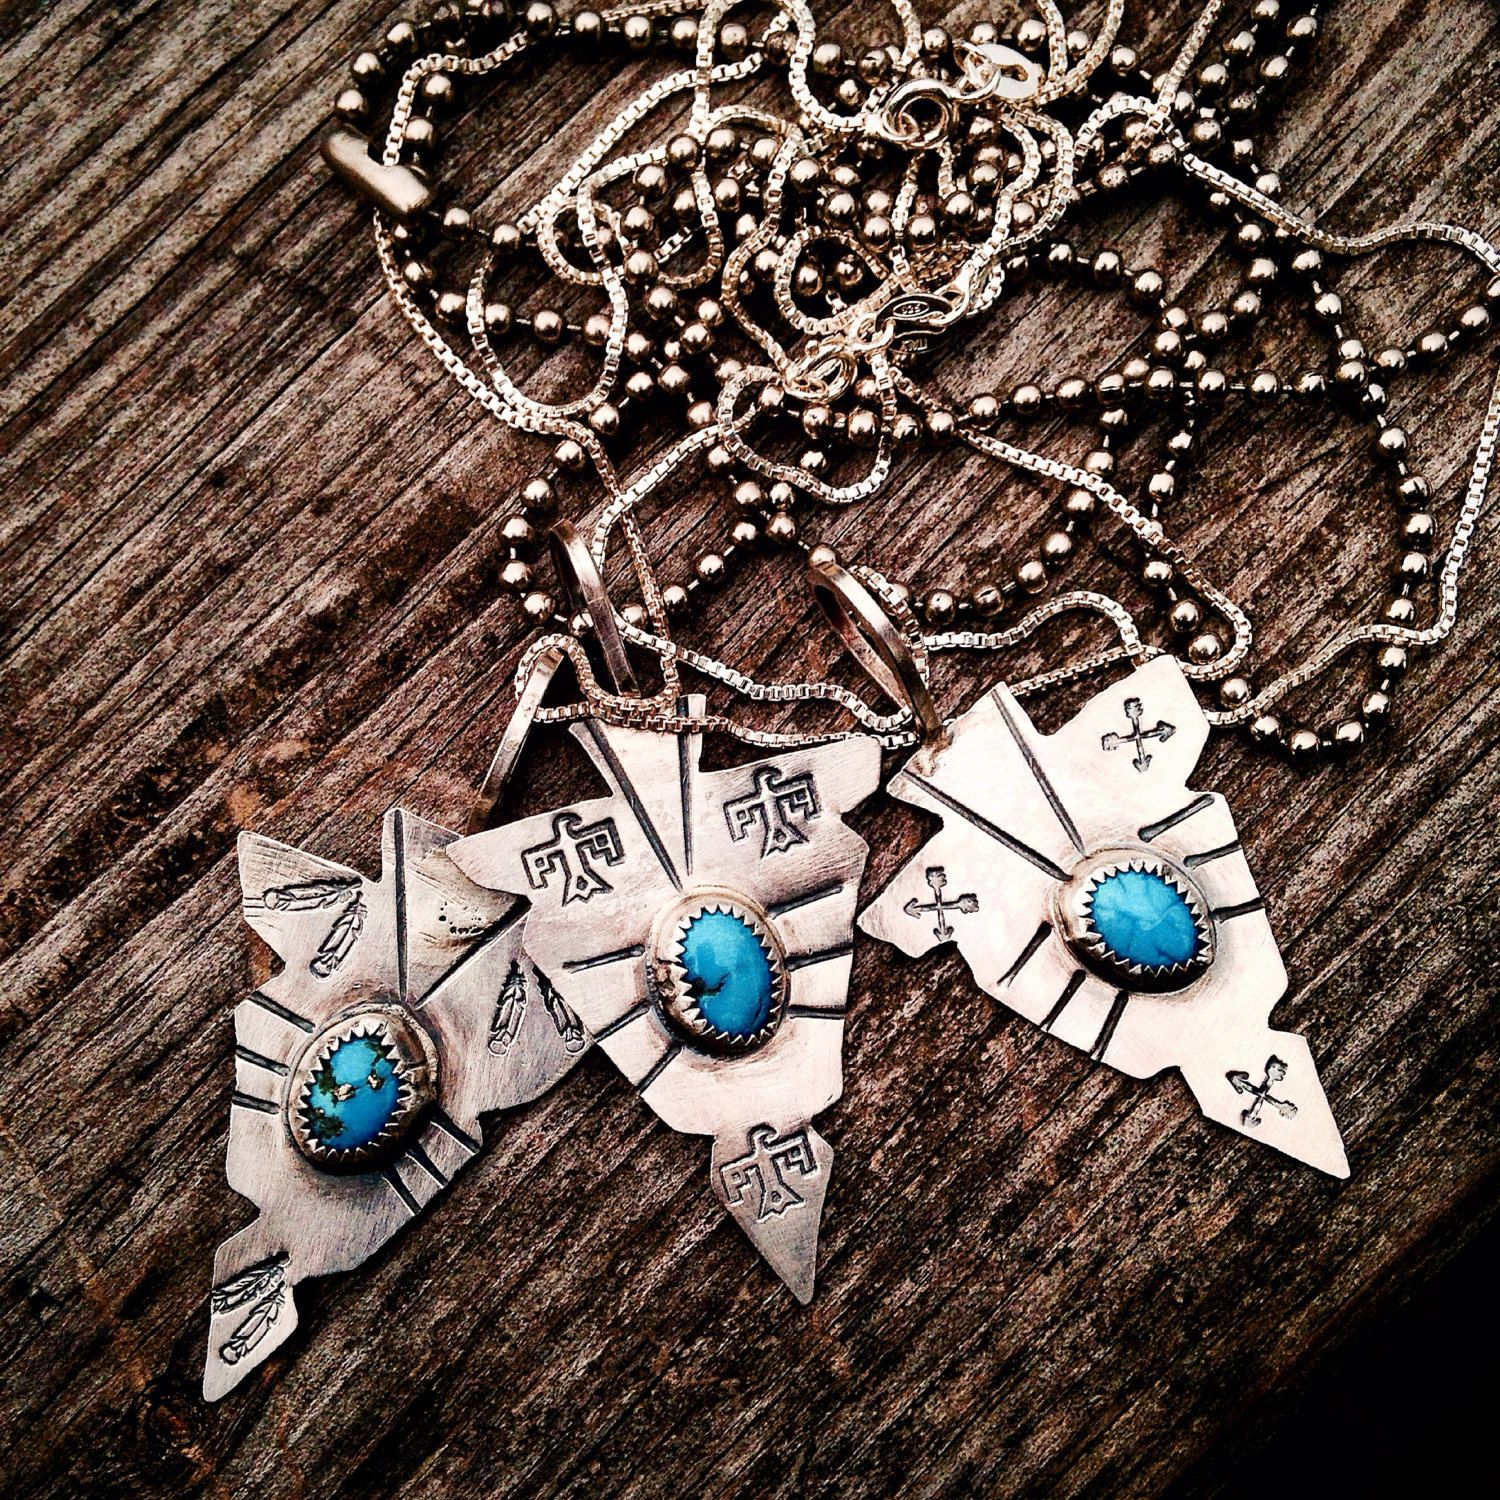 Sterling Silver and Sleeping Beauty Turquoise Arrowhead Pendants, with Sterling Silver Chain by MaedayMetals on Etsy